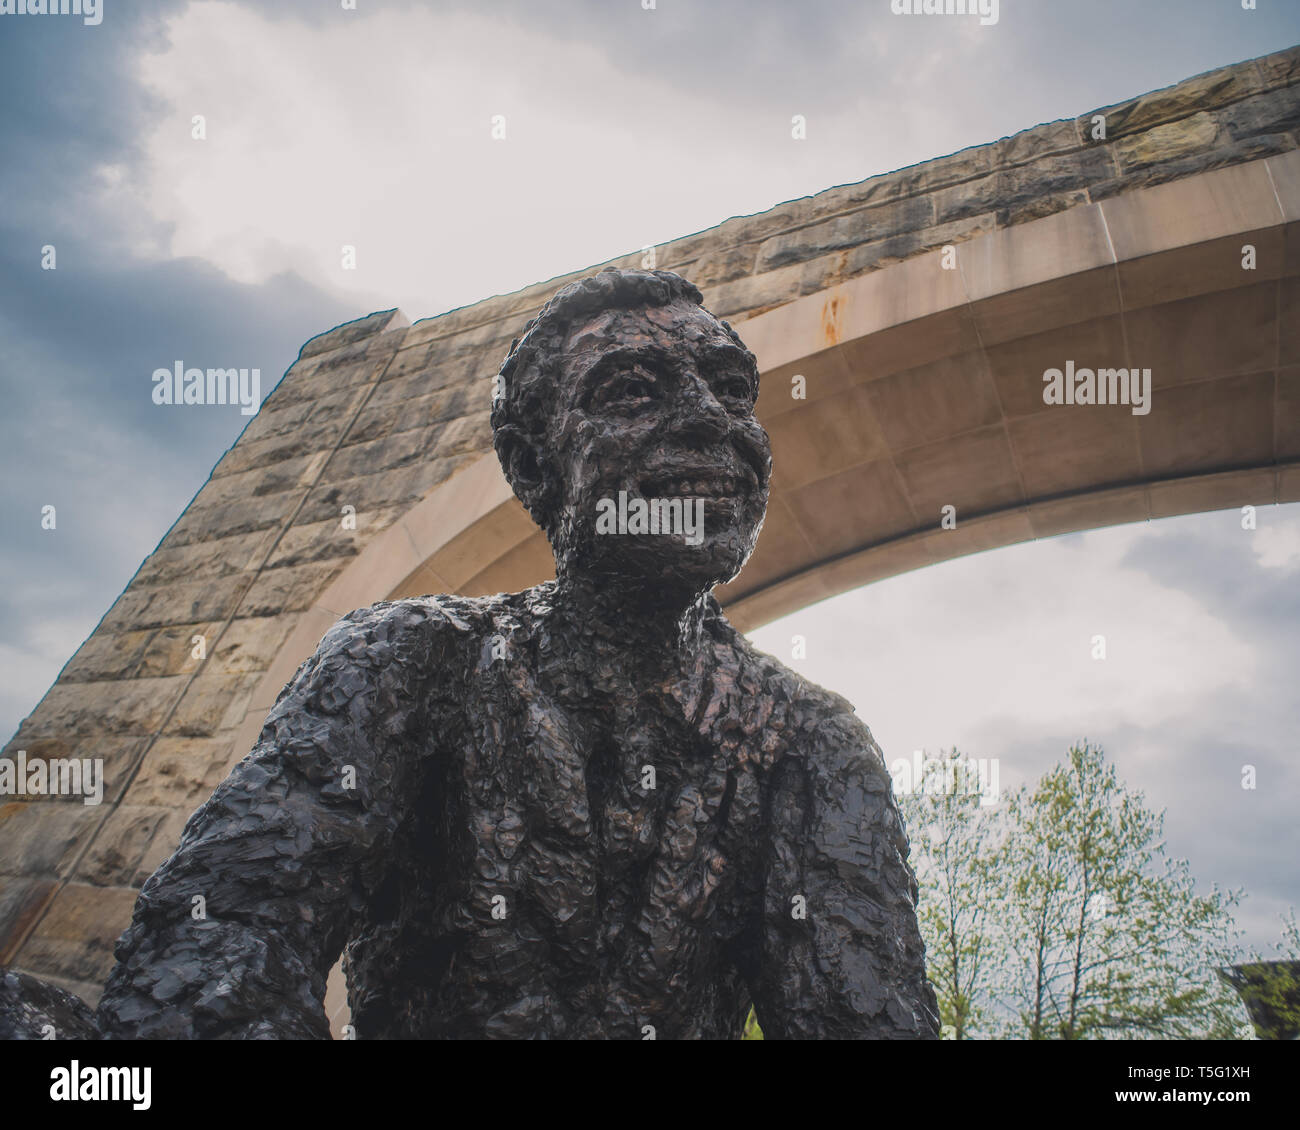 Fred Rogers Memorial Statue Stock Photo Alamy